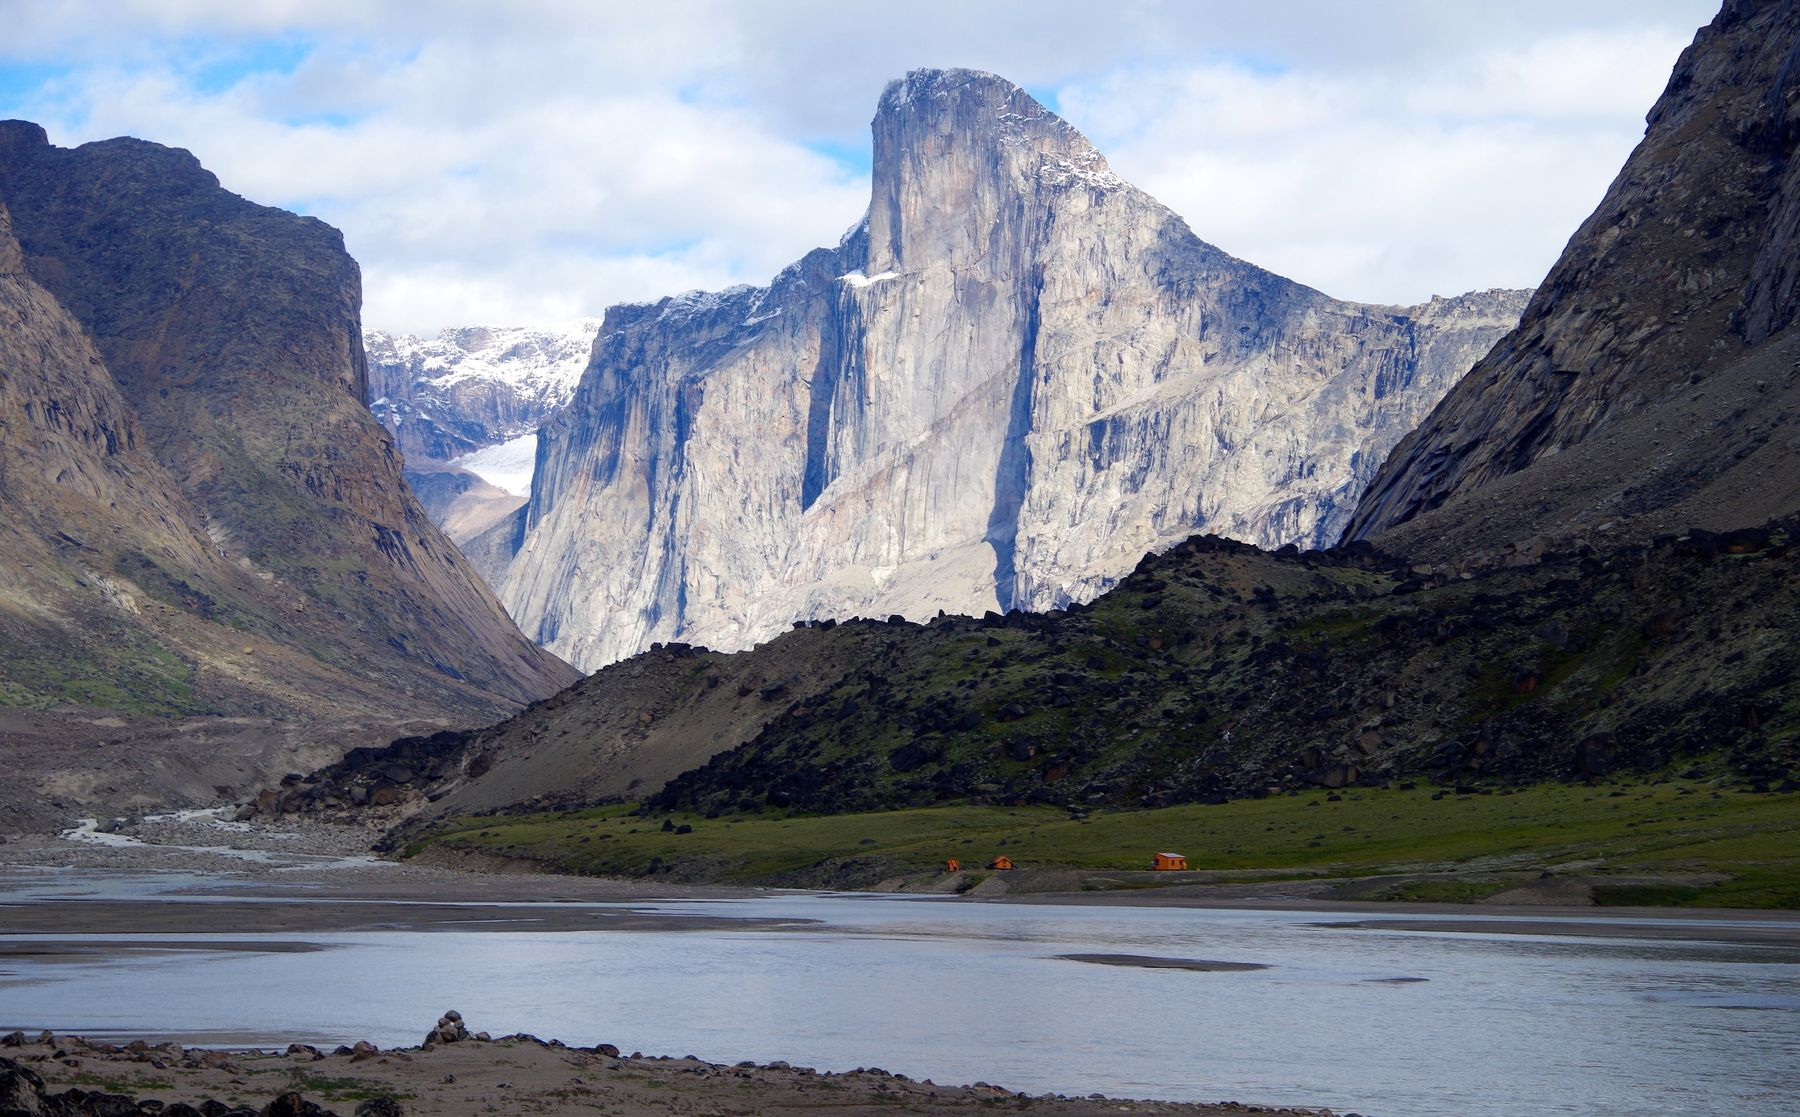 Mount Thor by the lake in Auyuittuq National Park in Nunavut, Canada